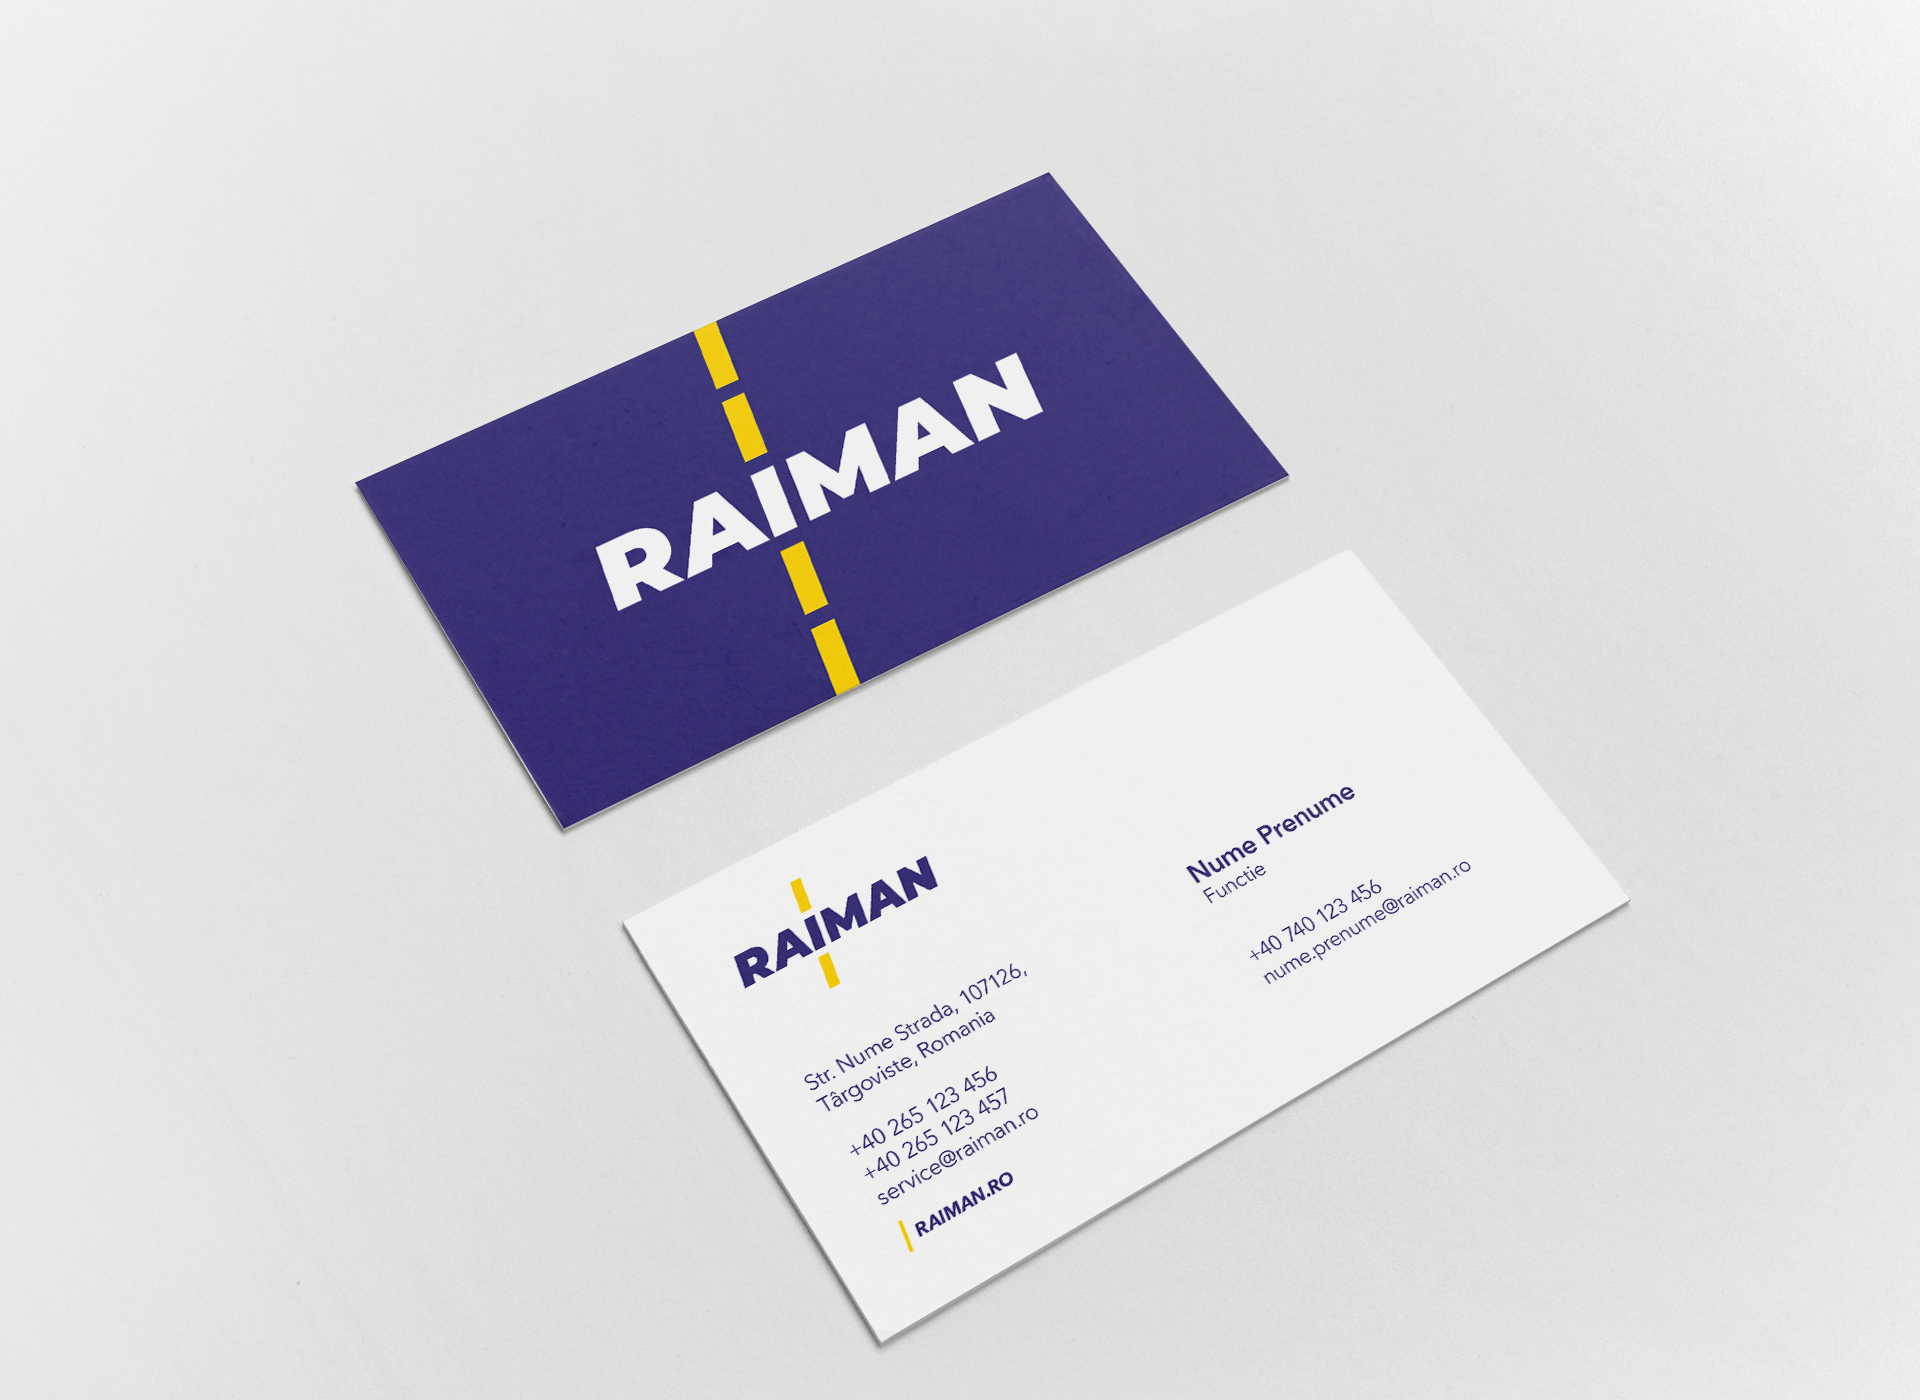 raiman portofoliu inoveo business card